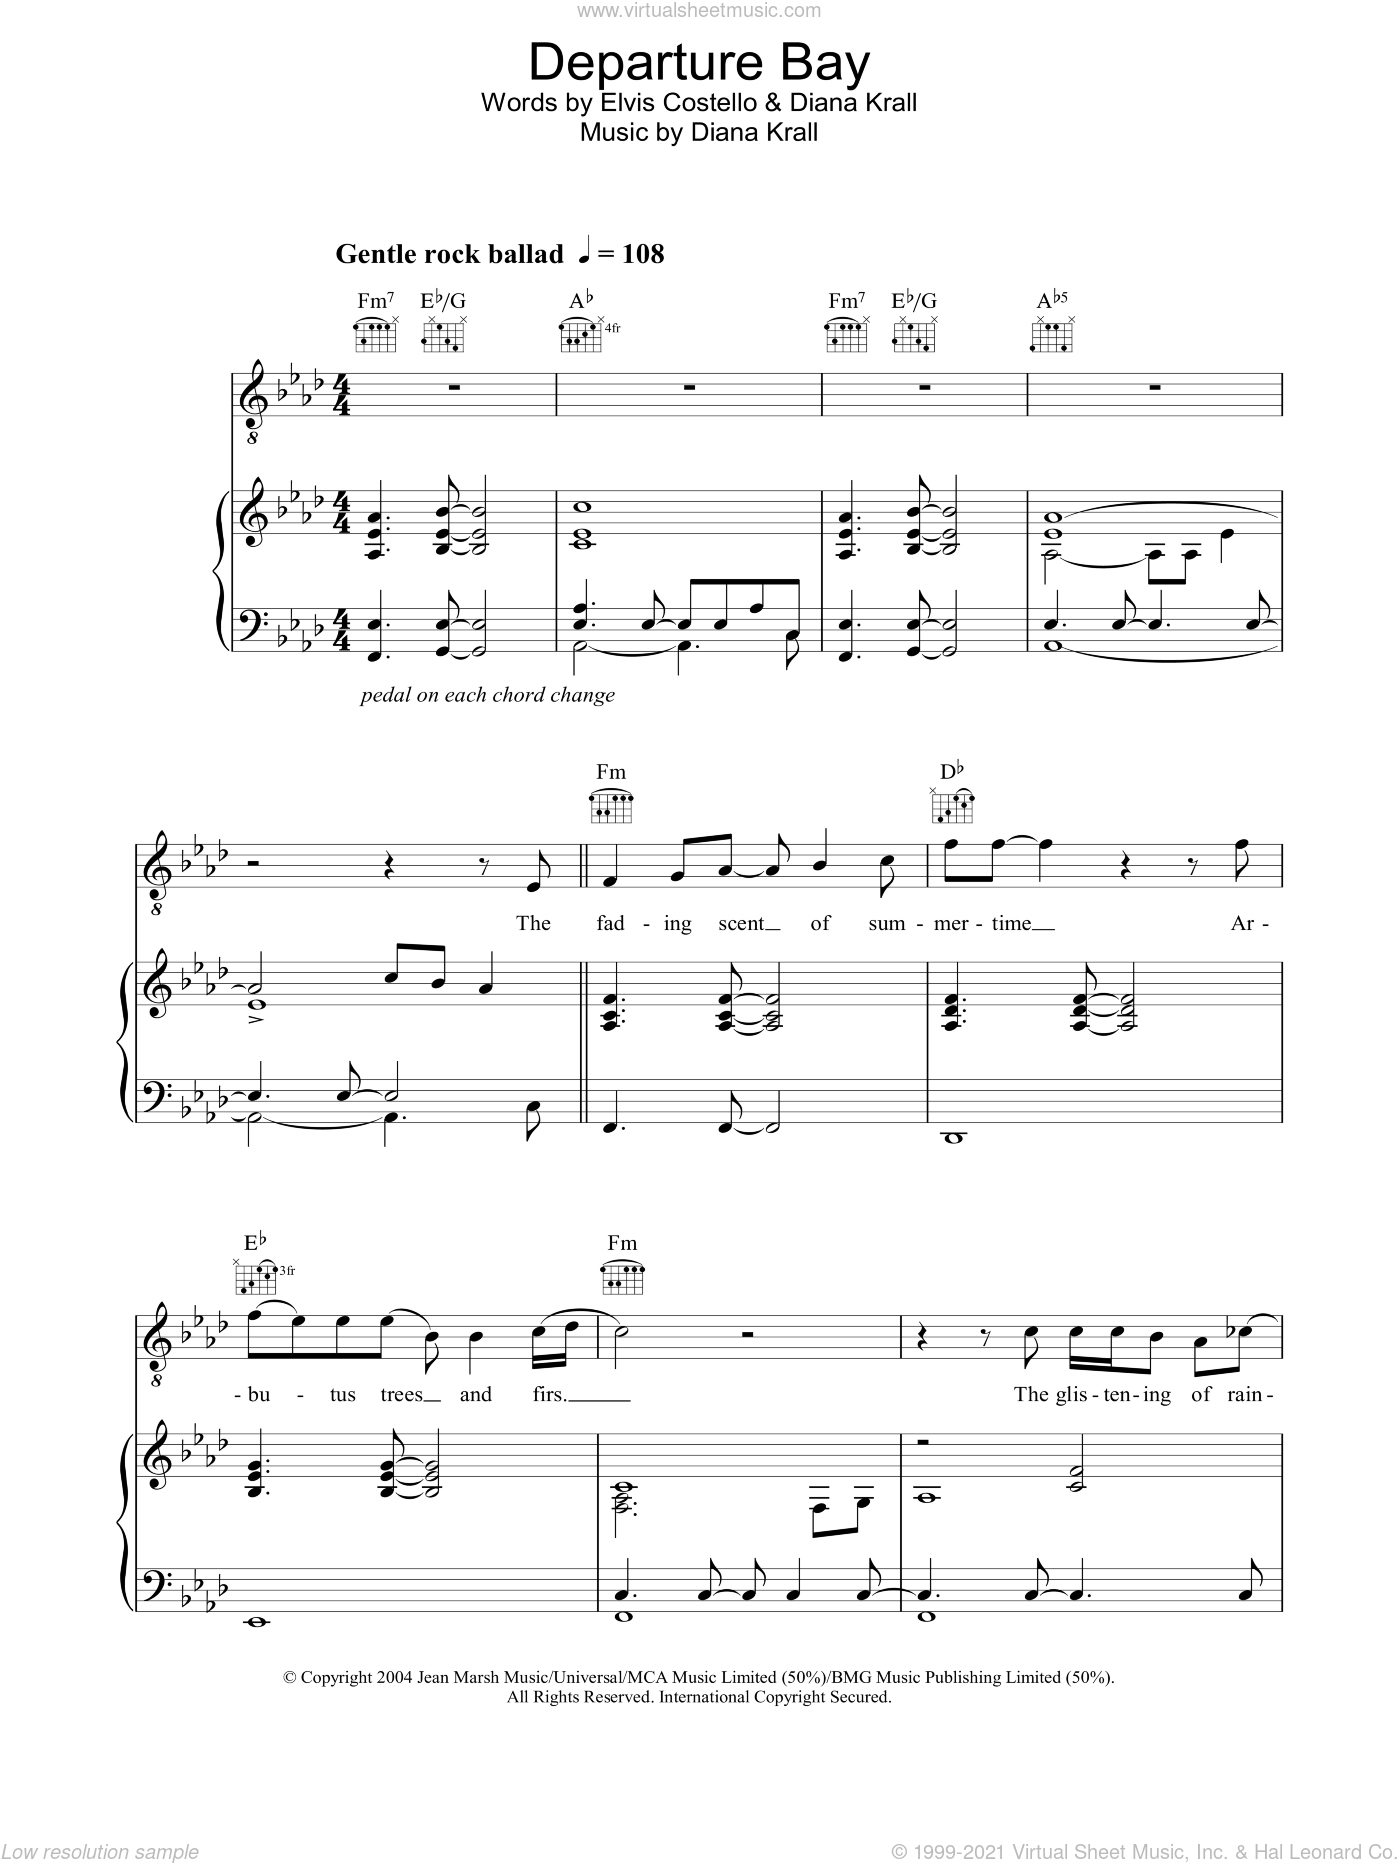 Departure Bay sheet music for voice, piano or guitar by Diana Krall